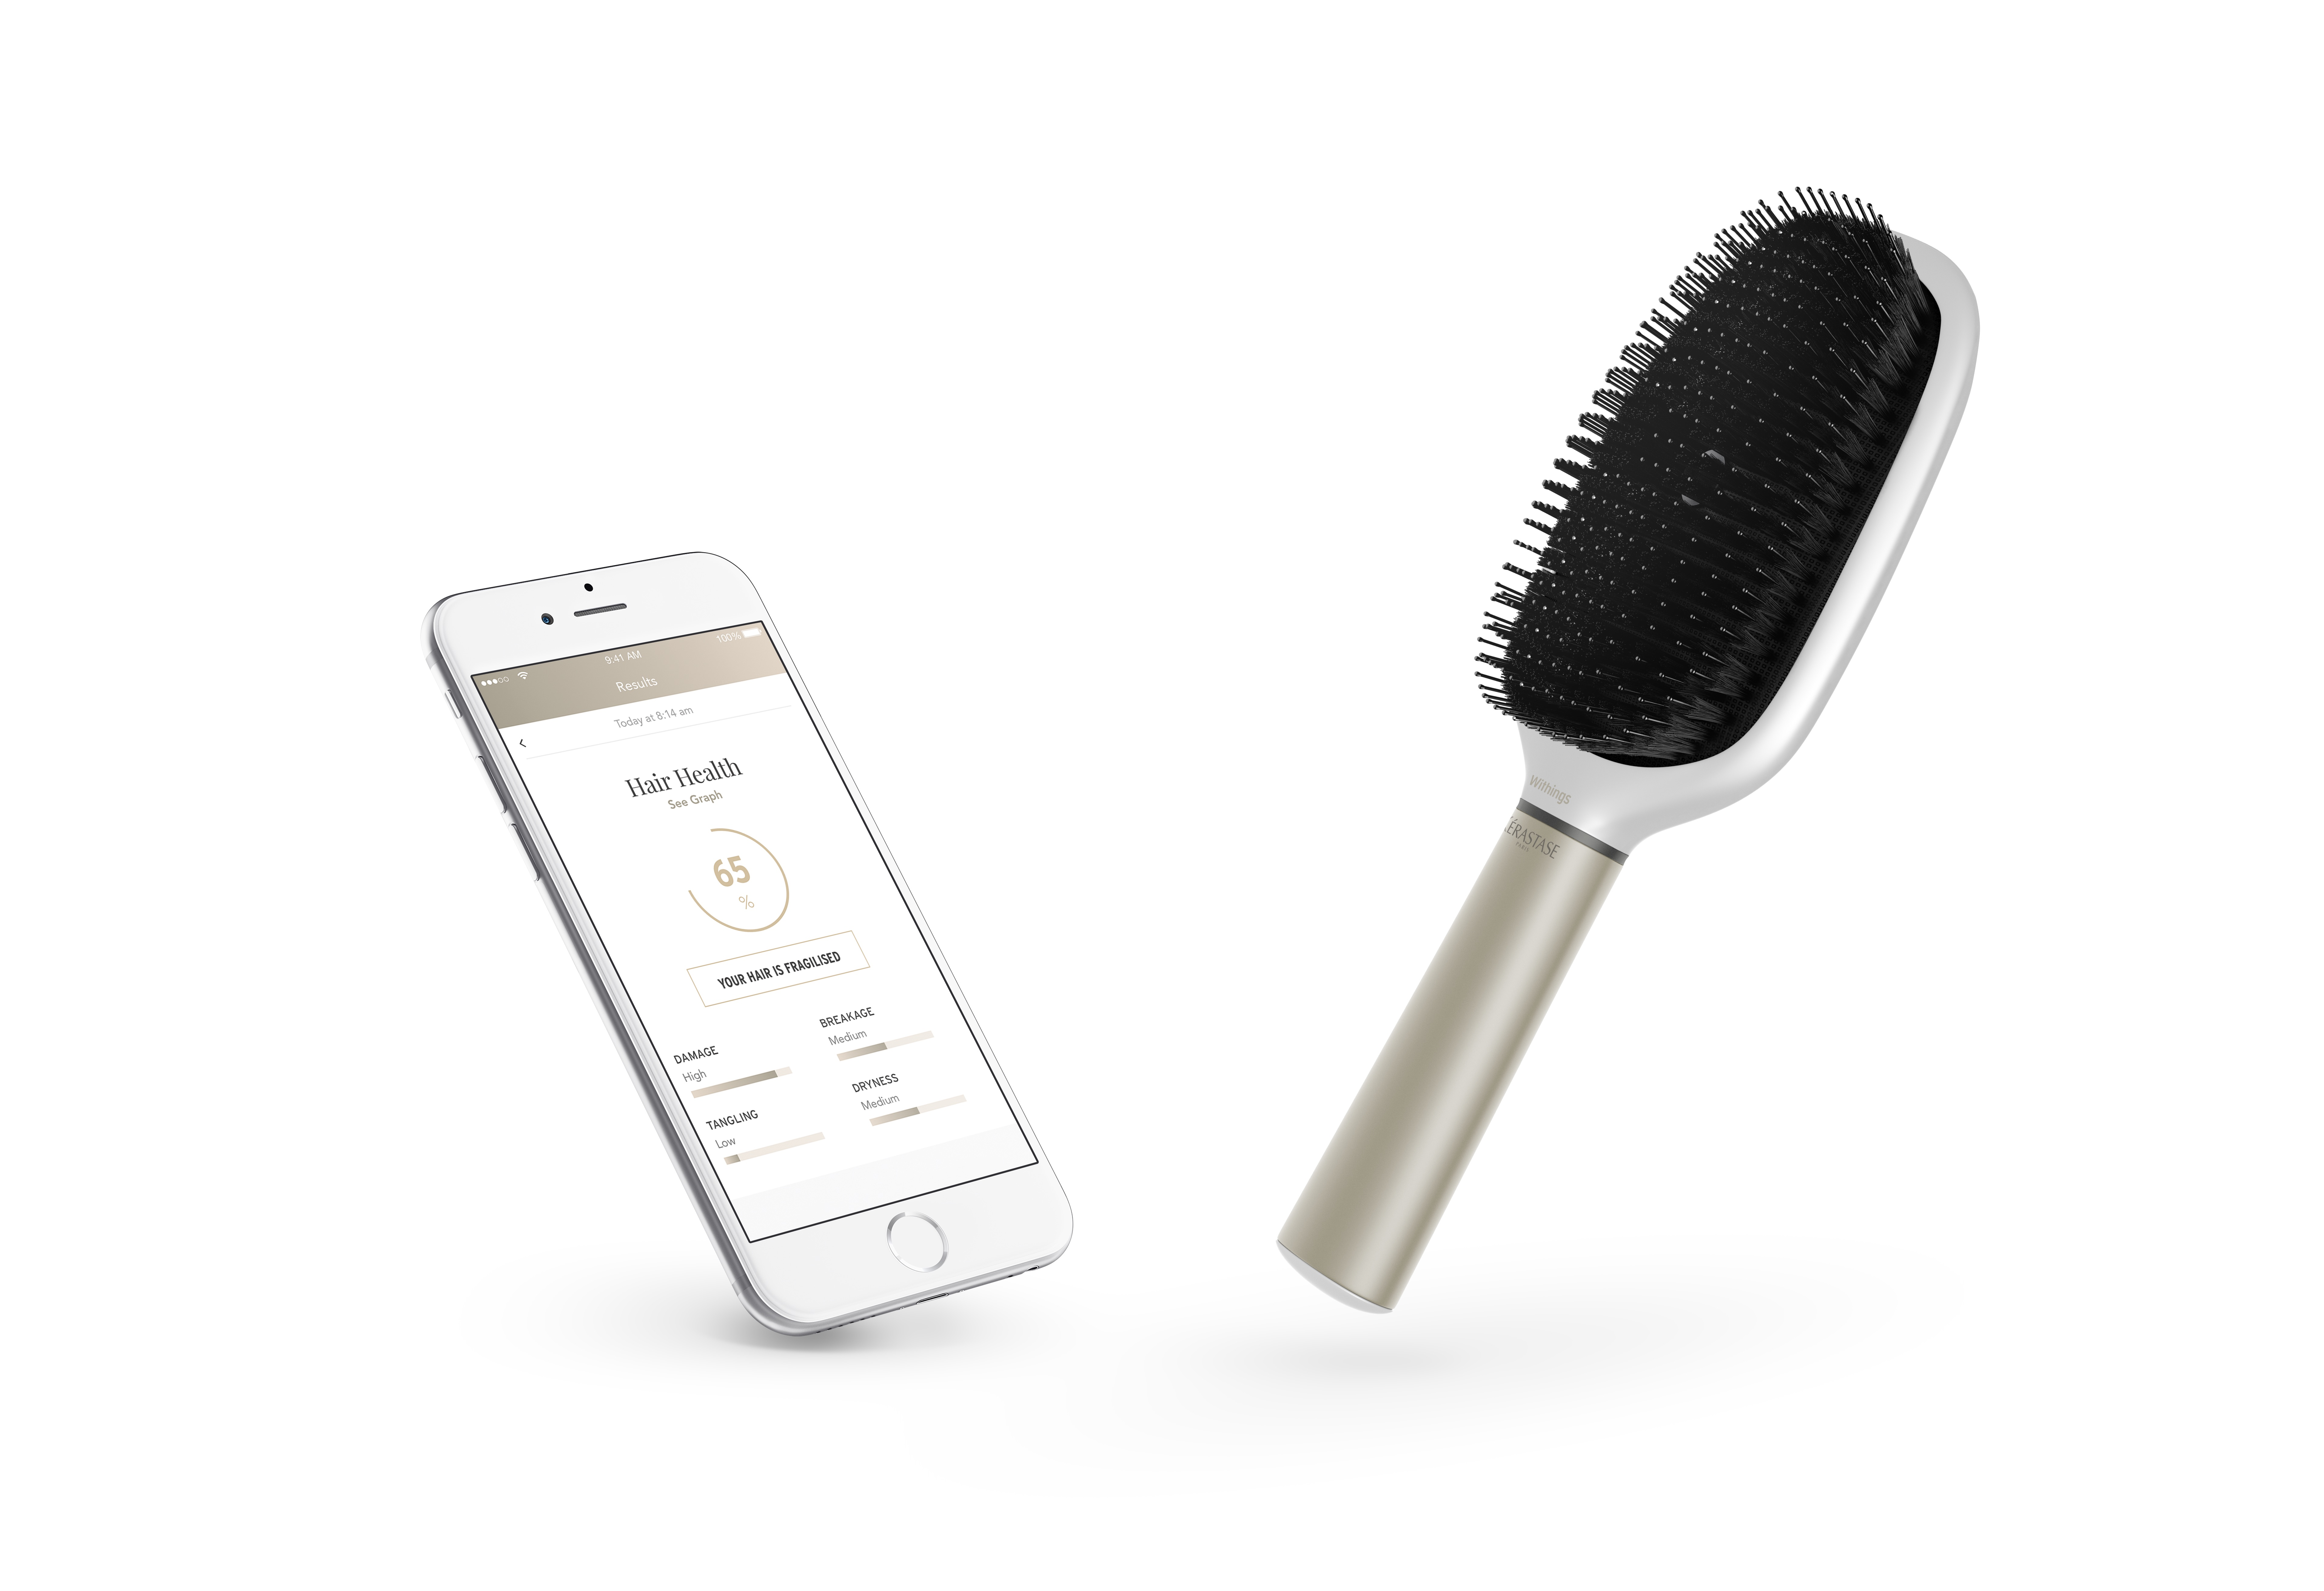 L'Oréal's Technology Incubator has unveiled a smart hairbrush at CES, a device that measures the quality of hair and the effects of different hair care routines.